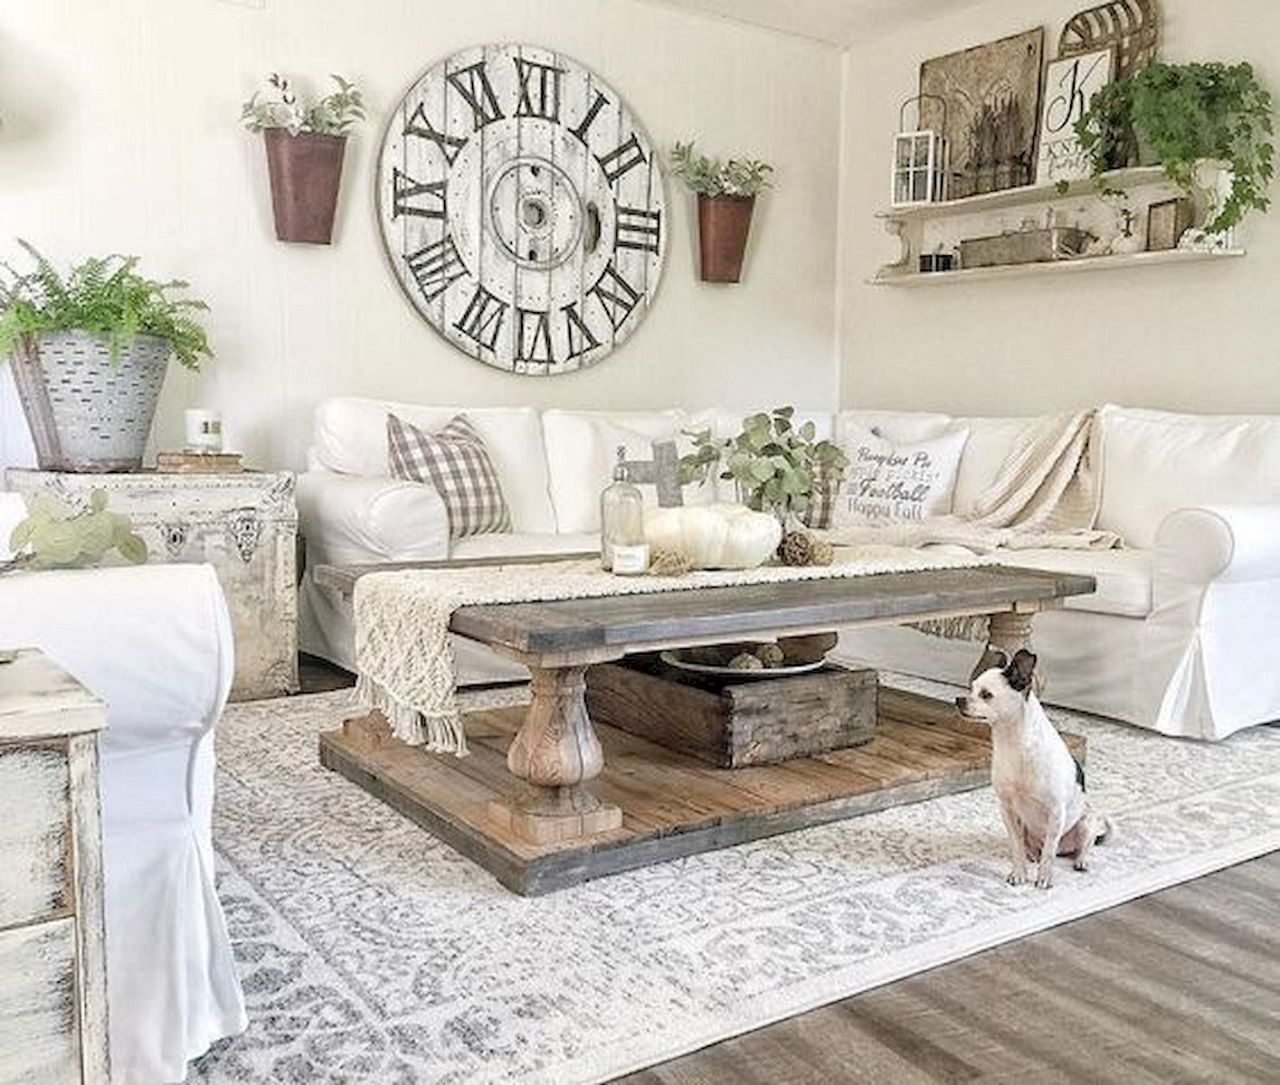 10 Cozy And Simple Farmhouse Living Room Decorating Ideas You Should Try In 2020 Farmhouse Living Room Furniture Farm House Living Room Minimalist Living Room Decor #simple #farmhouse #living #room #decor